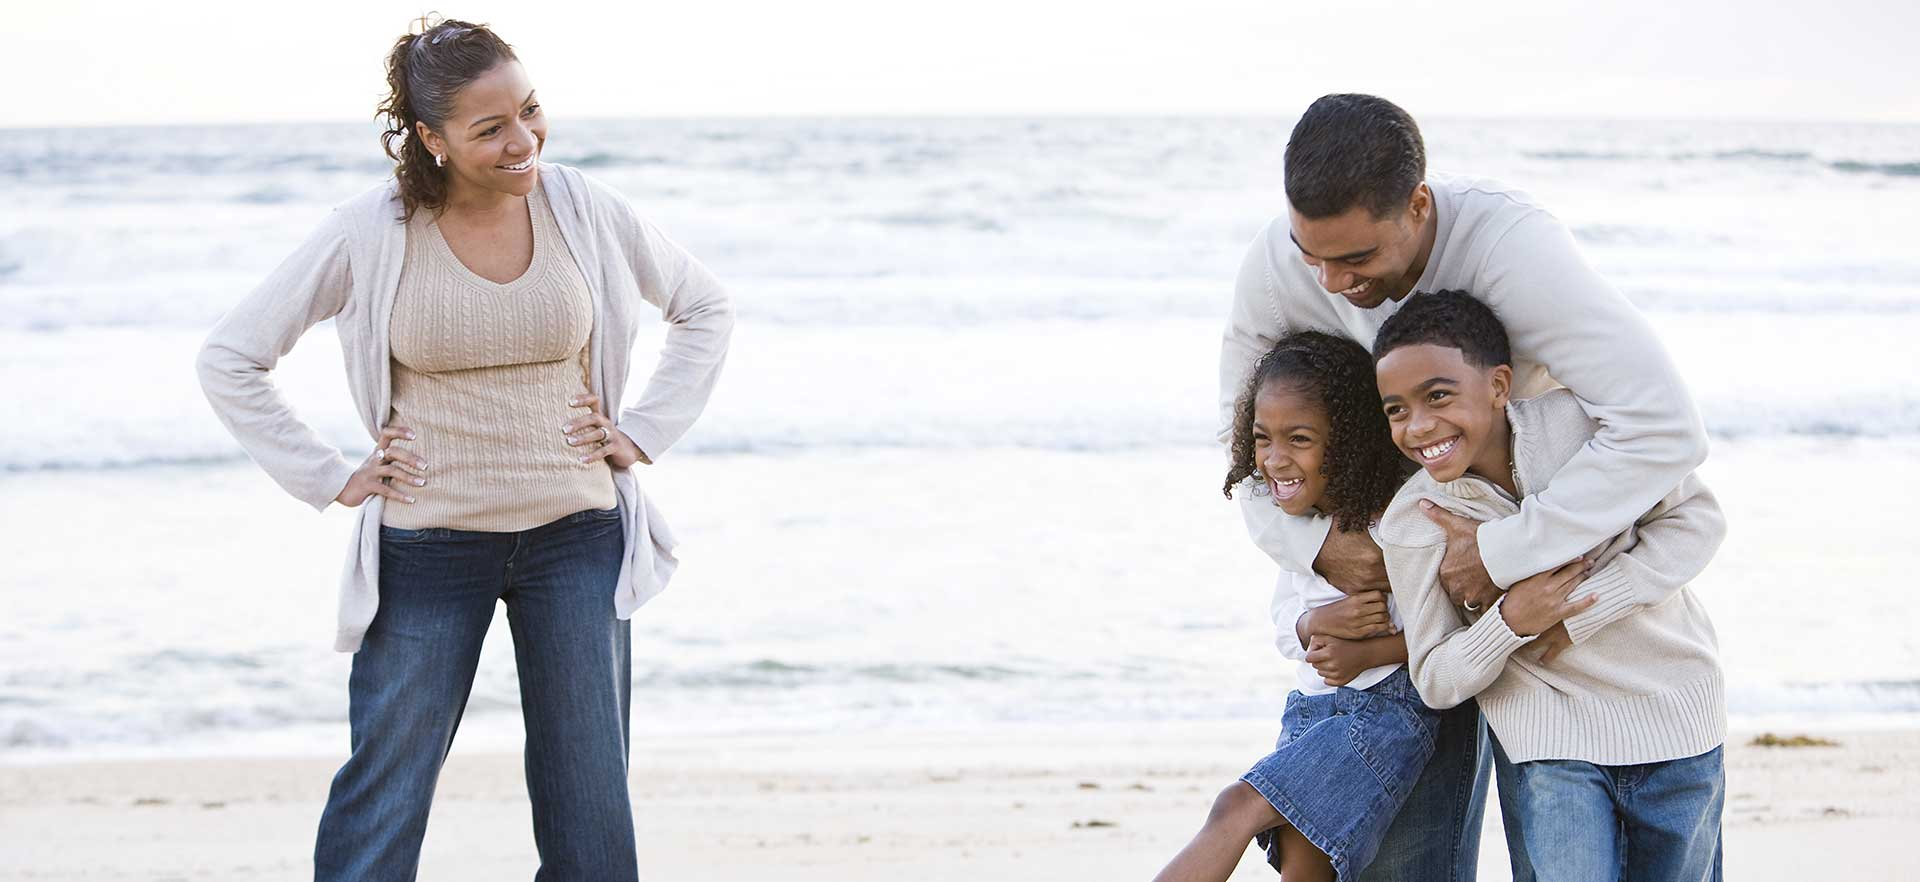 Chiropractic care for common family needs